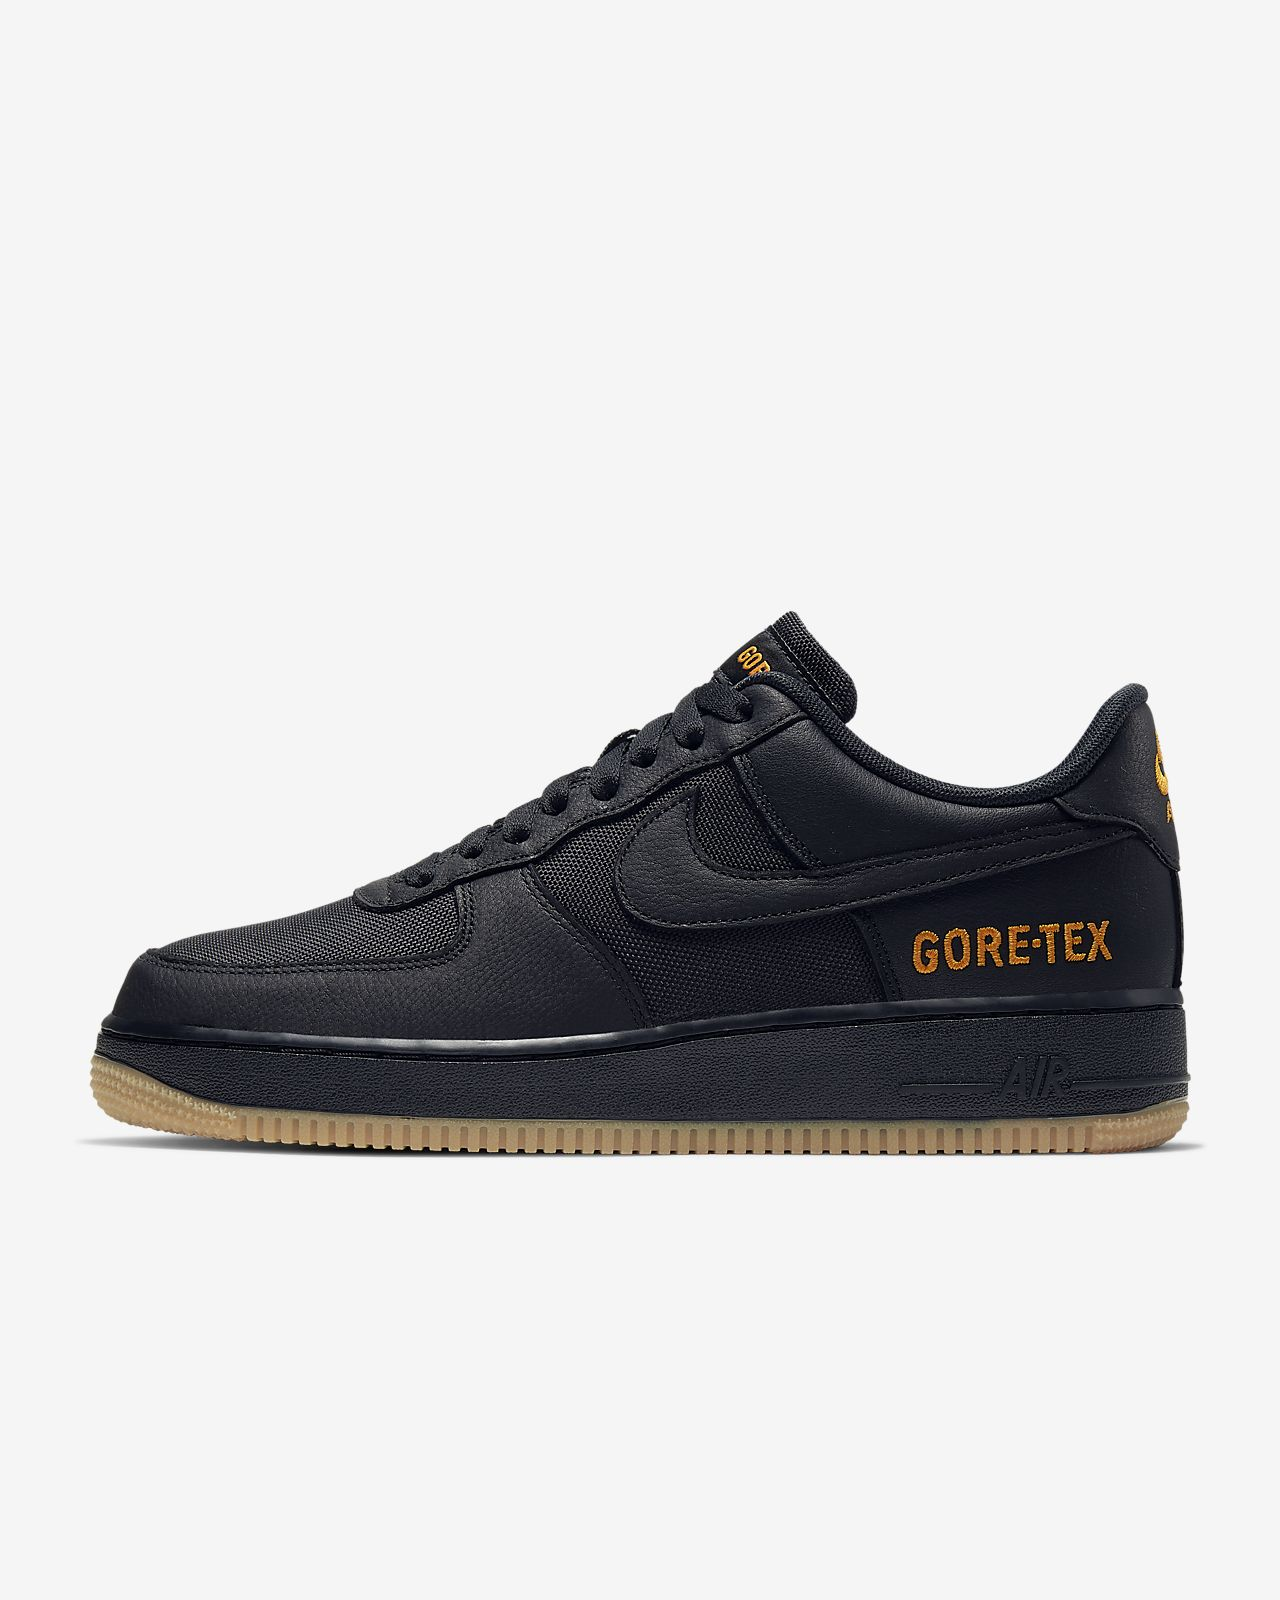 Nike Air Force 1 Low Just Do It now available in Black Orange